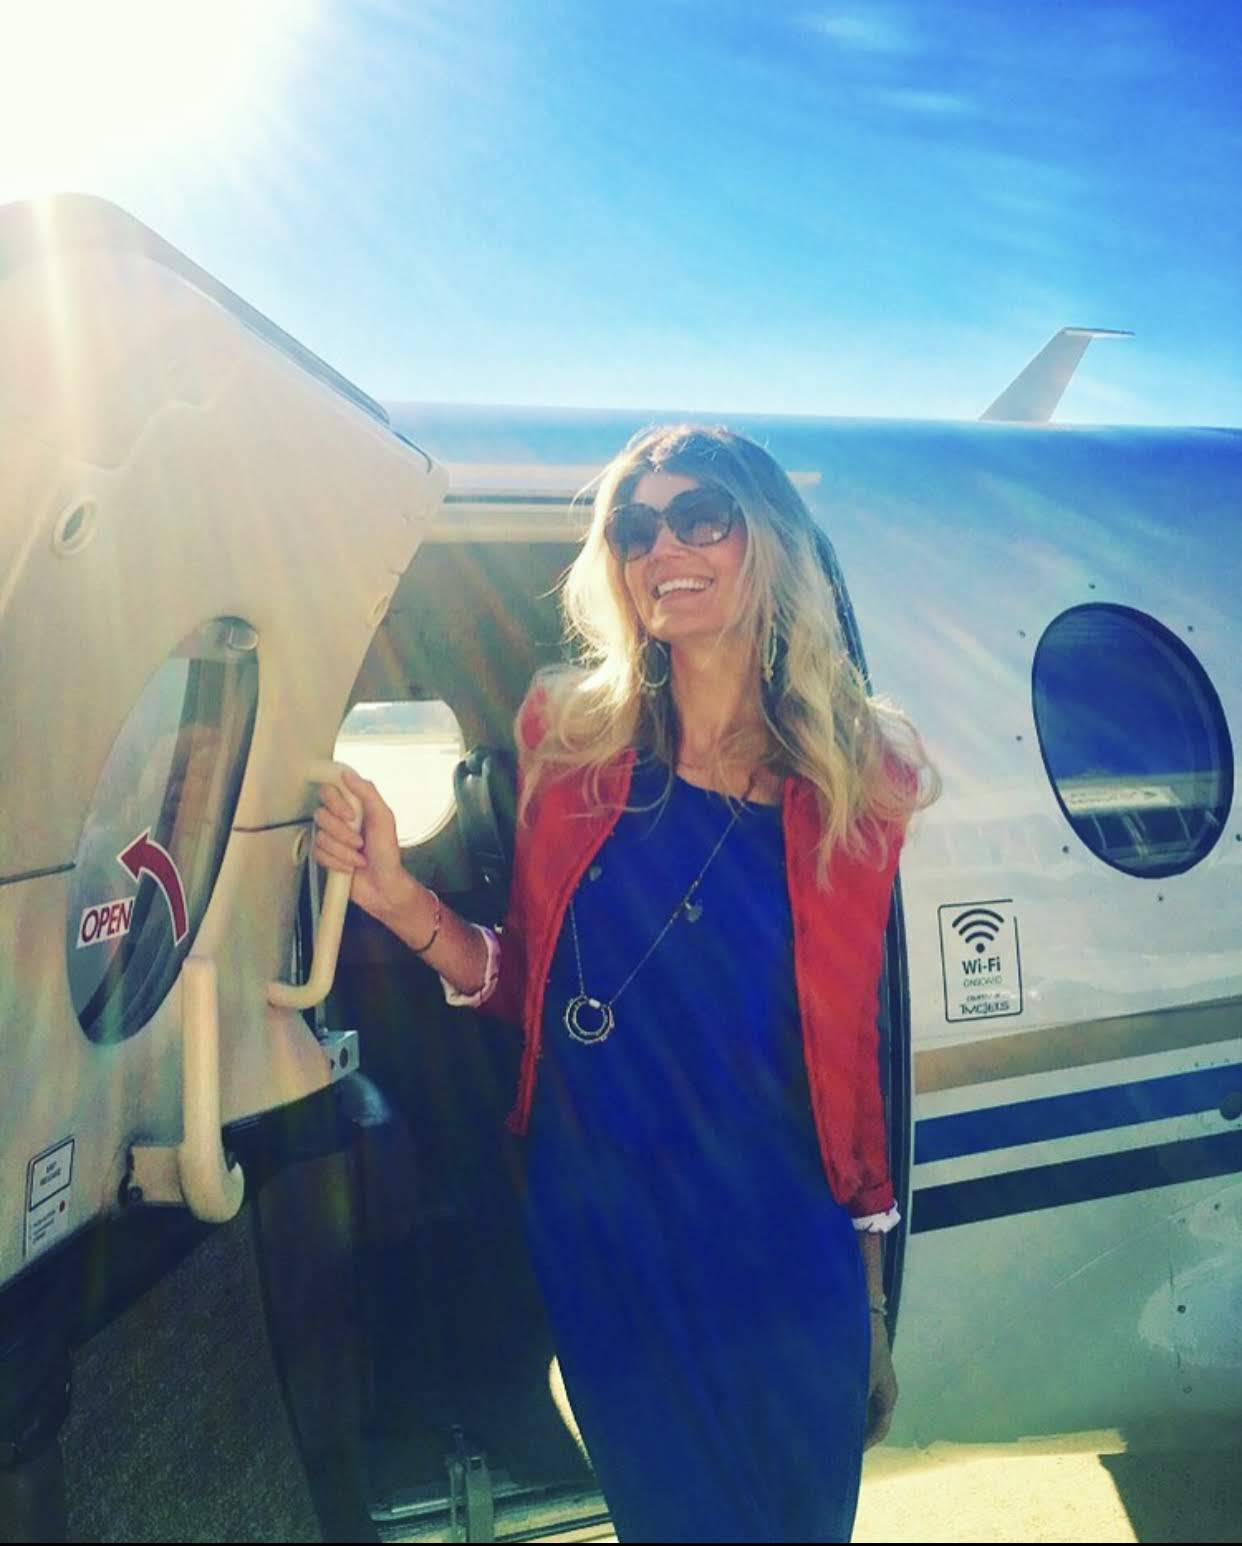 stepping out of a glamorous private plane wearing a long blue dress and sunglasses